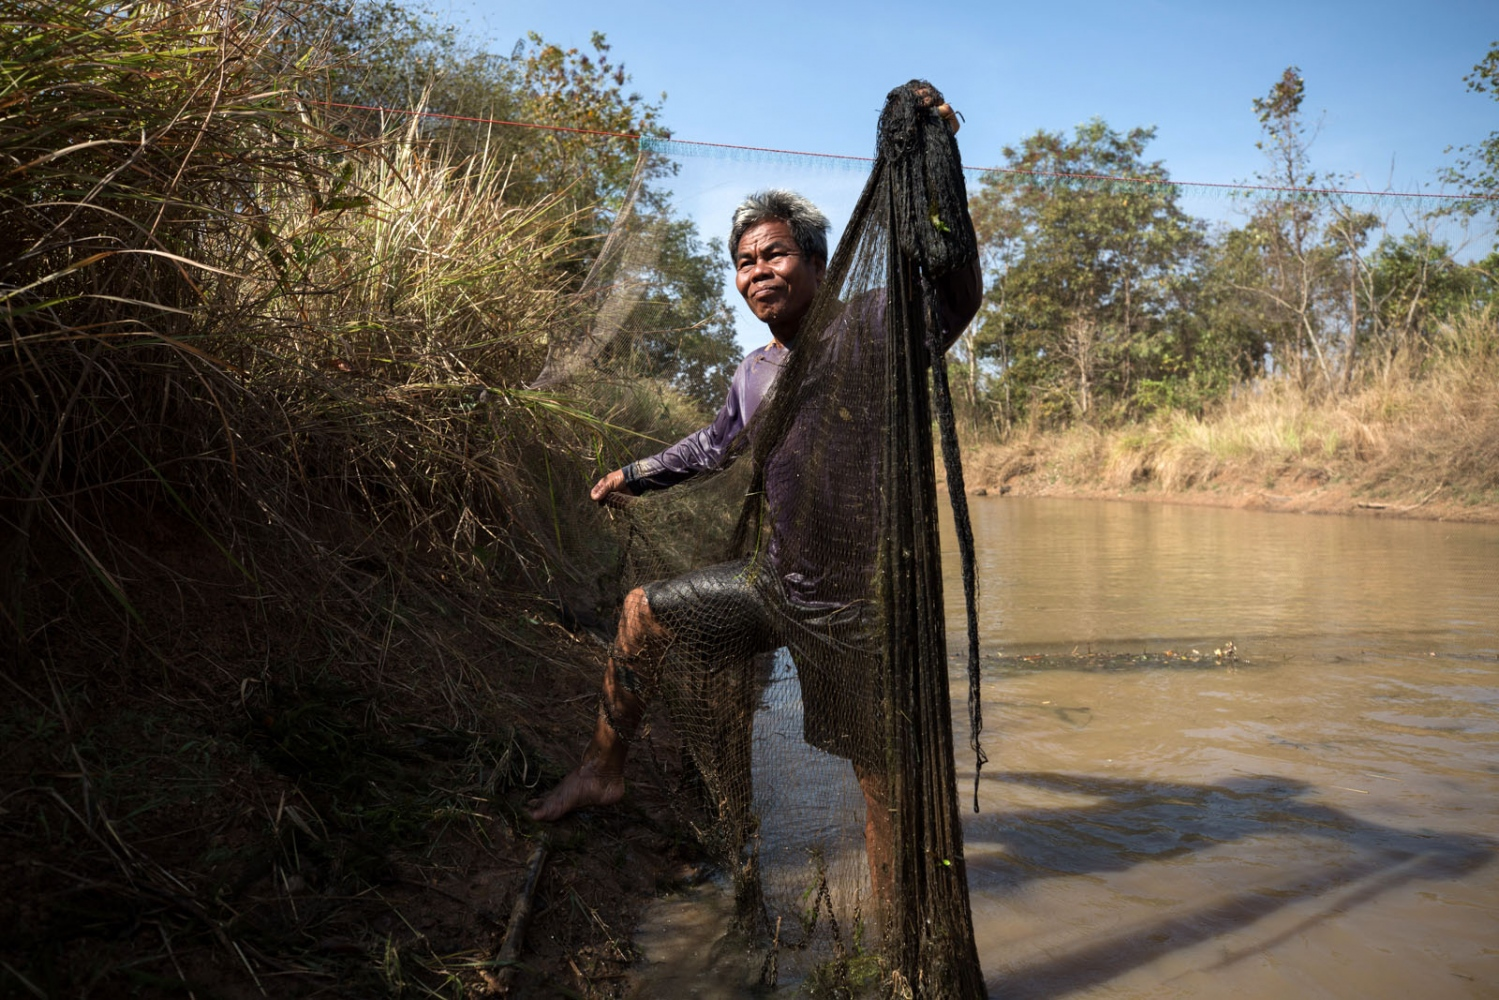 Por Dui, 51, uses his net to catch fish and crabs in a small canal that runs from the main lake in their community.